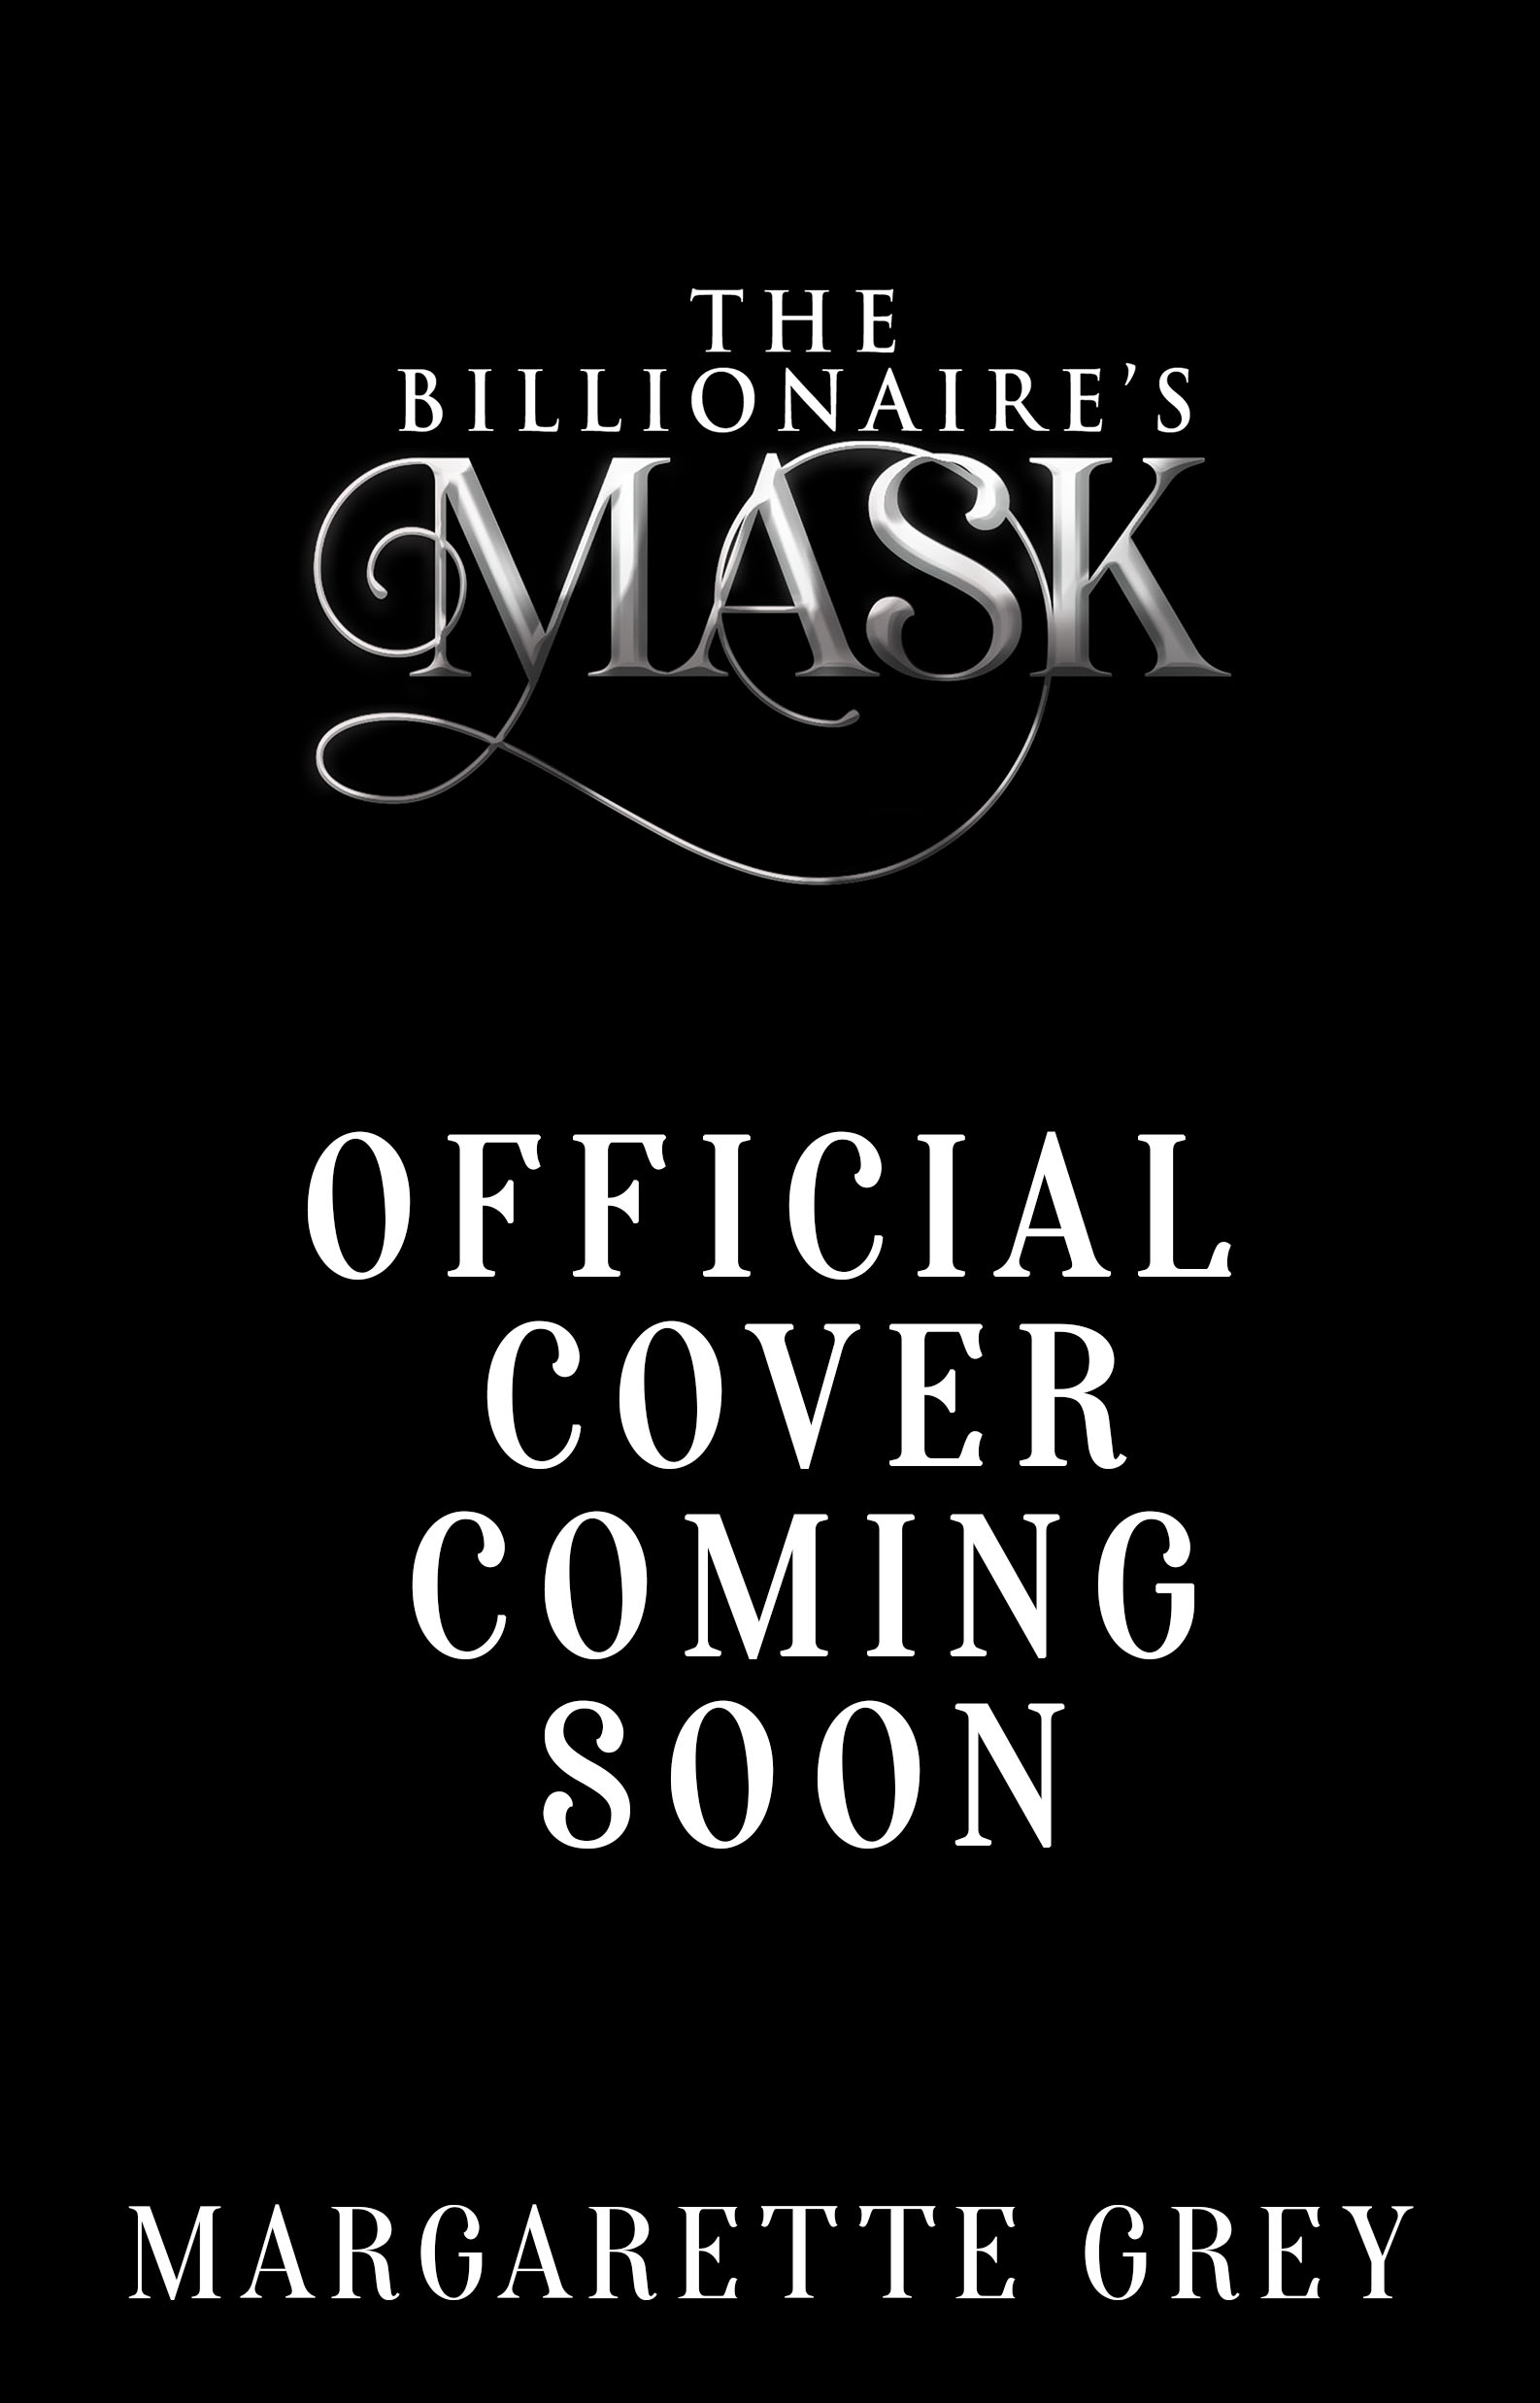 The Billionaire's Mask Full Cover Coming Soon